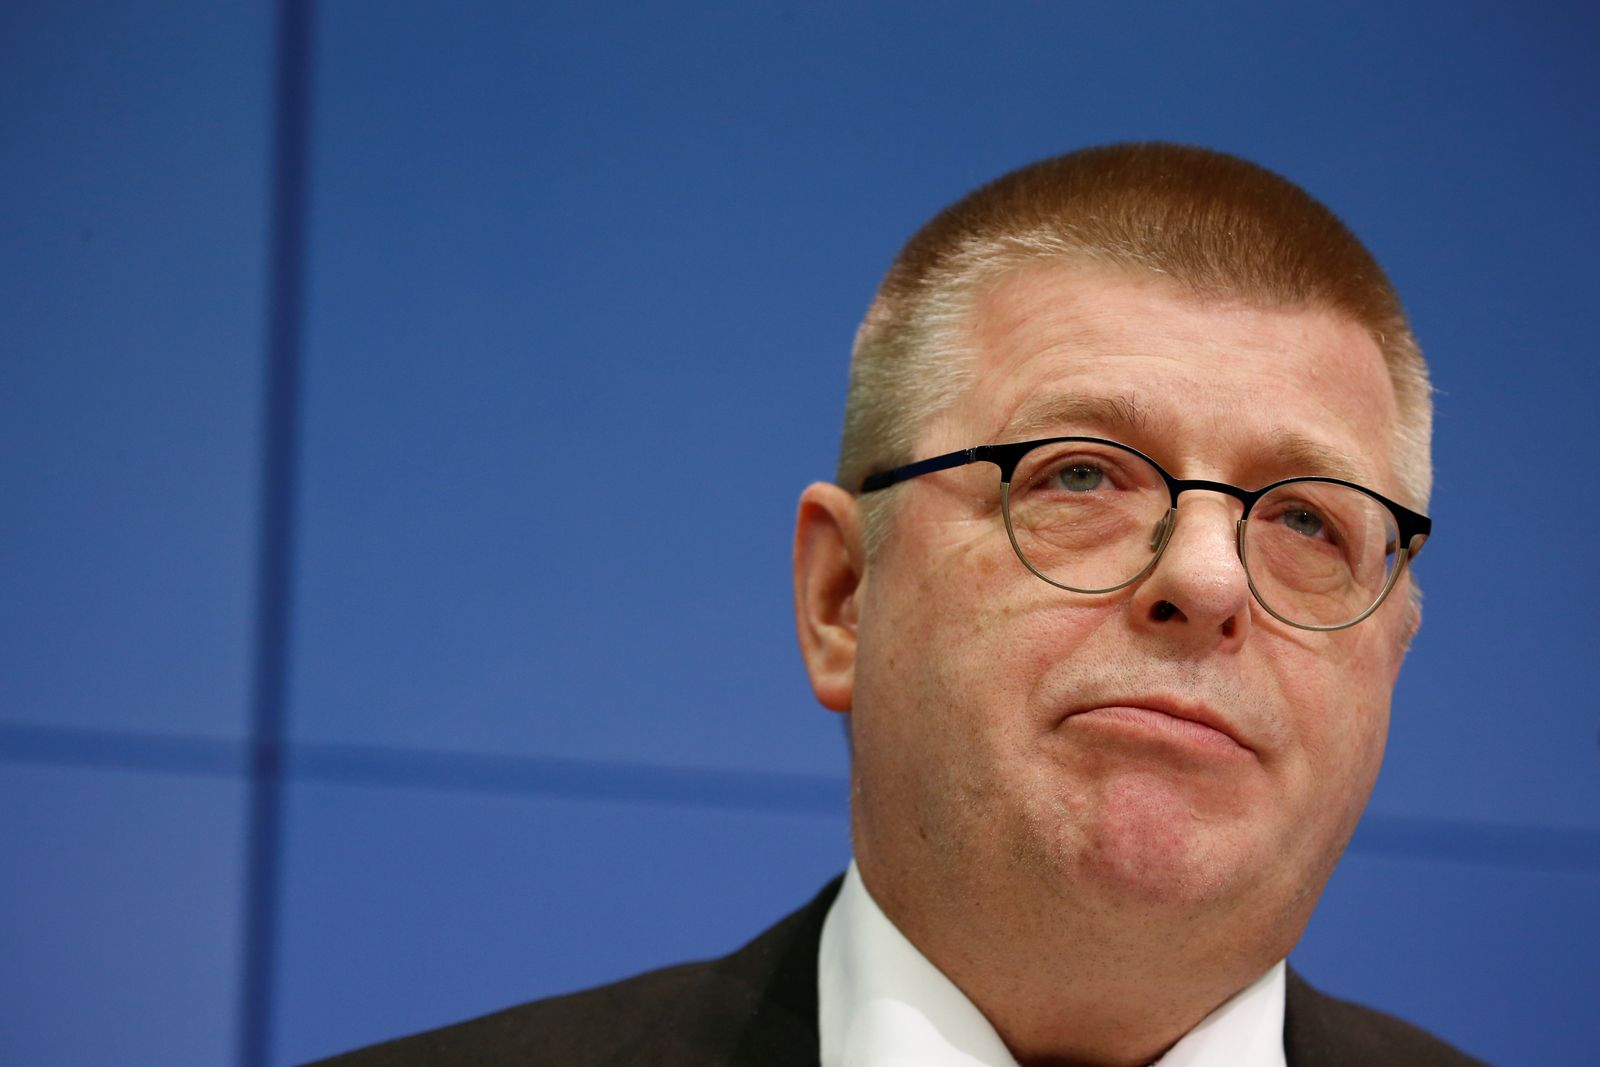 President of the Federal Office for the Protection of the Constitution Haldenwang news conference in Berlin